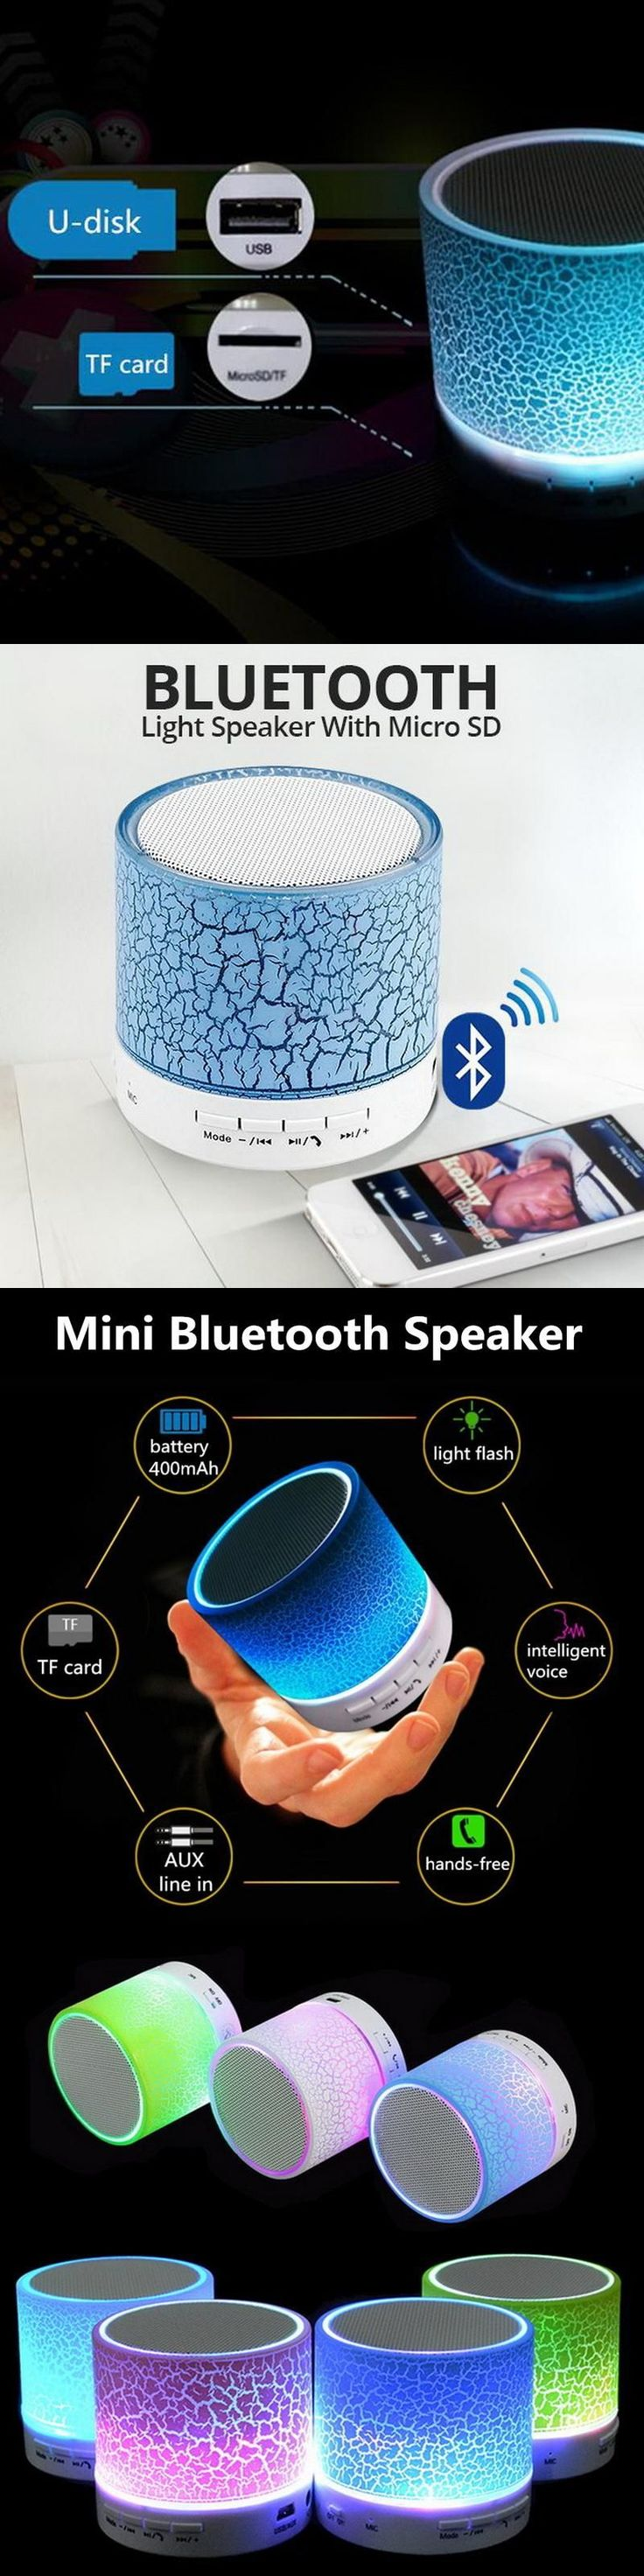 Mini LED Portable Bluetooth Speakers Wireless Hands Free With TF USB FM Blutooth Music For Mobile Phone iPhone Bluetooth Device